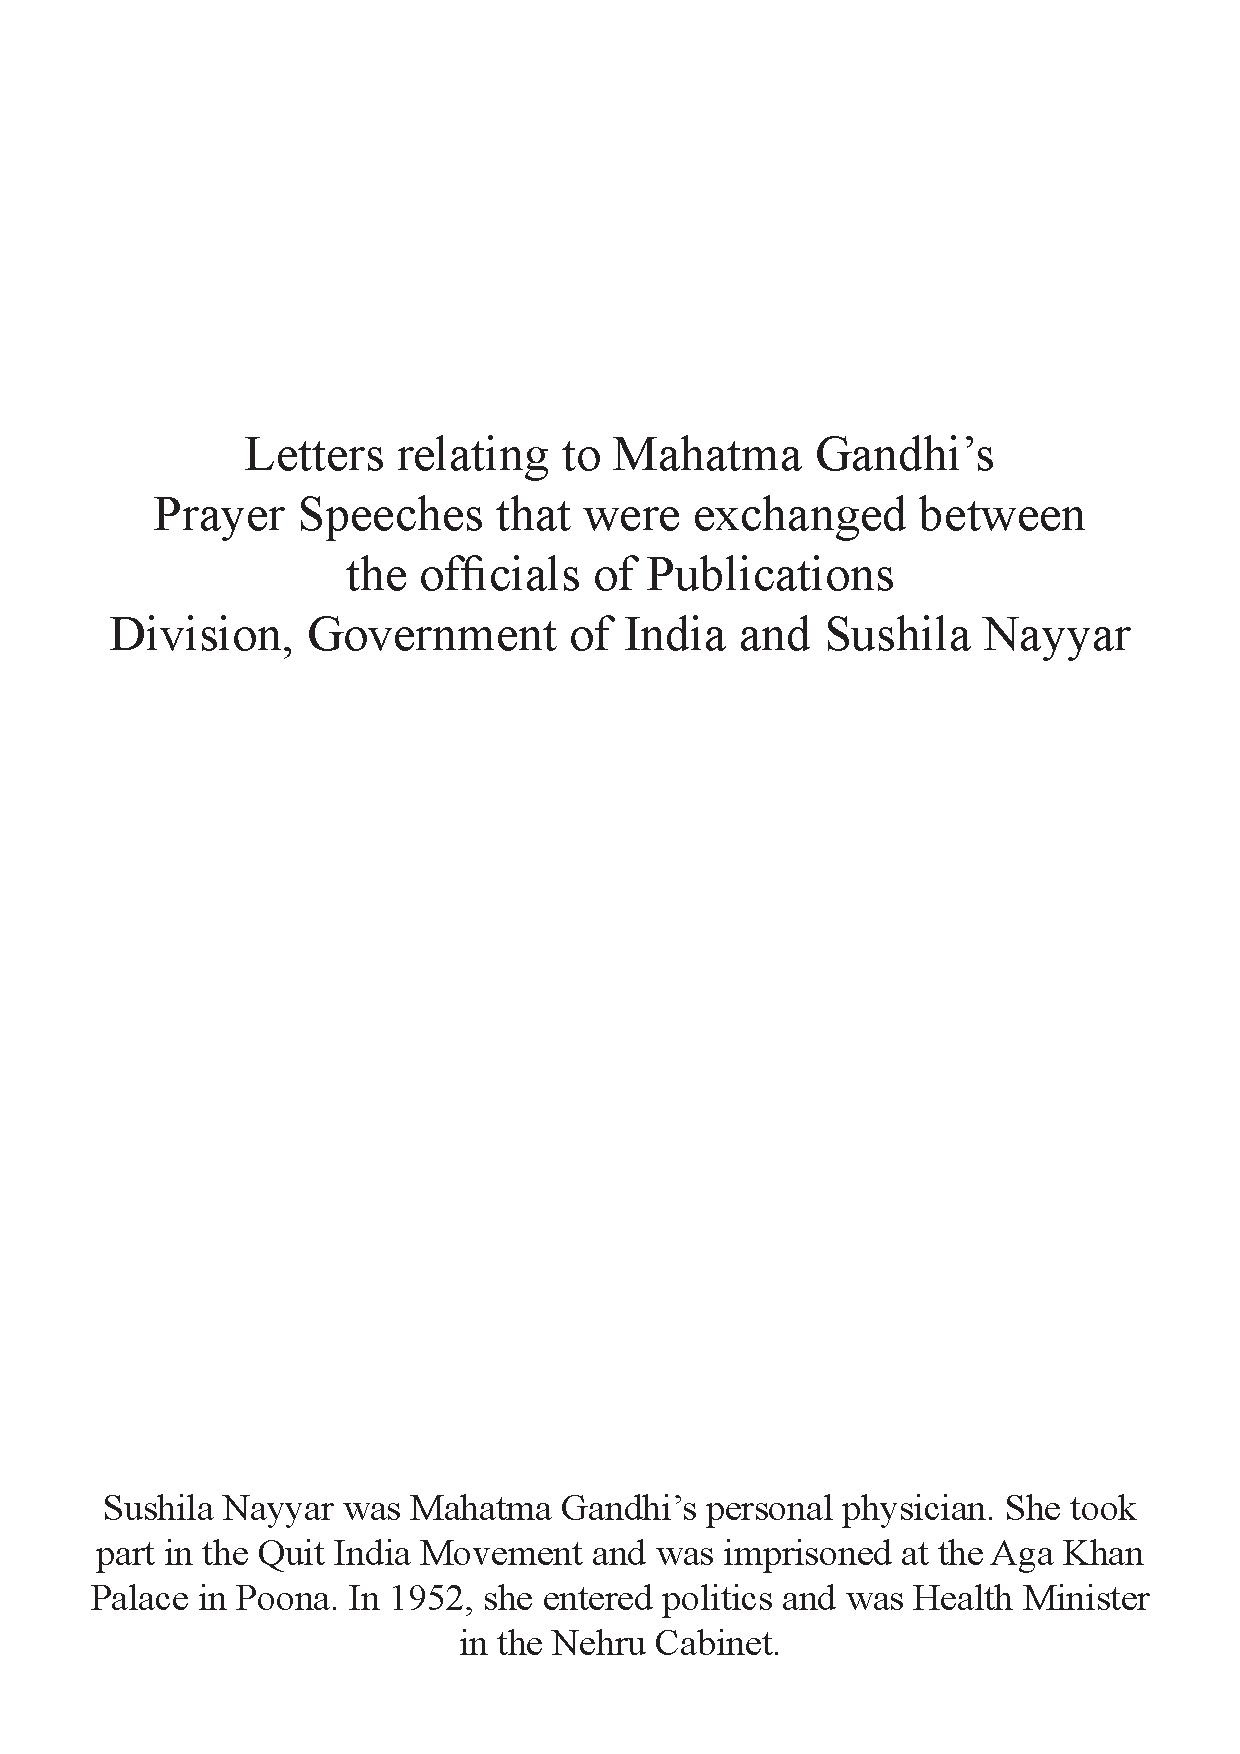 Official correspondence relating to Prayer Speeches of Mahatma Gandhi